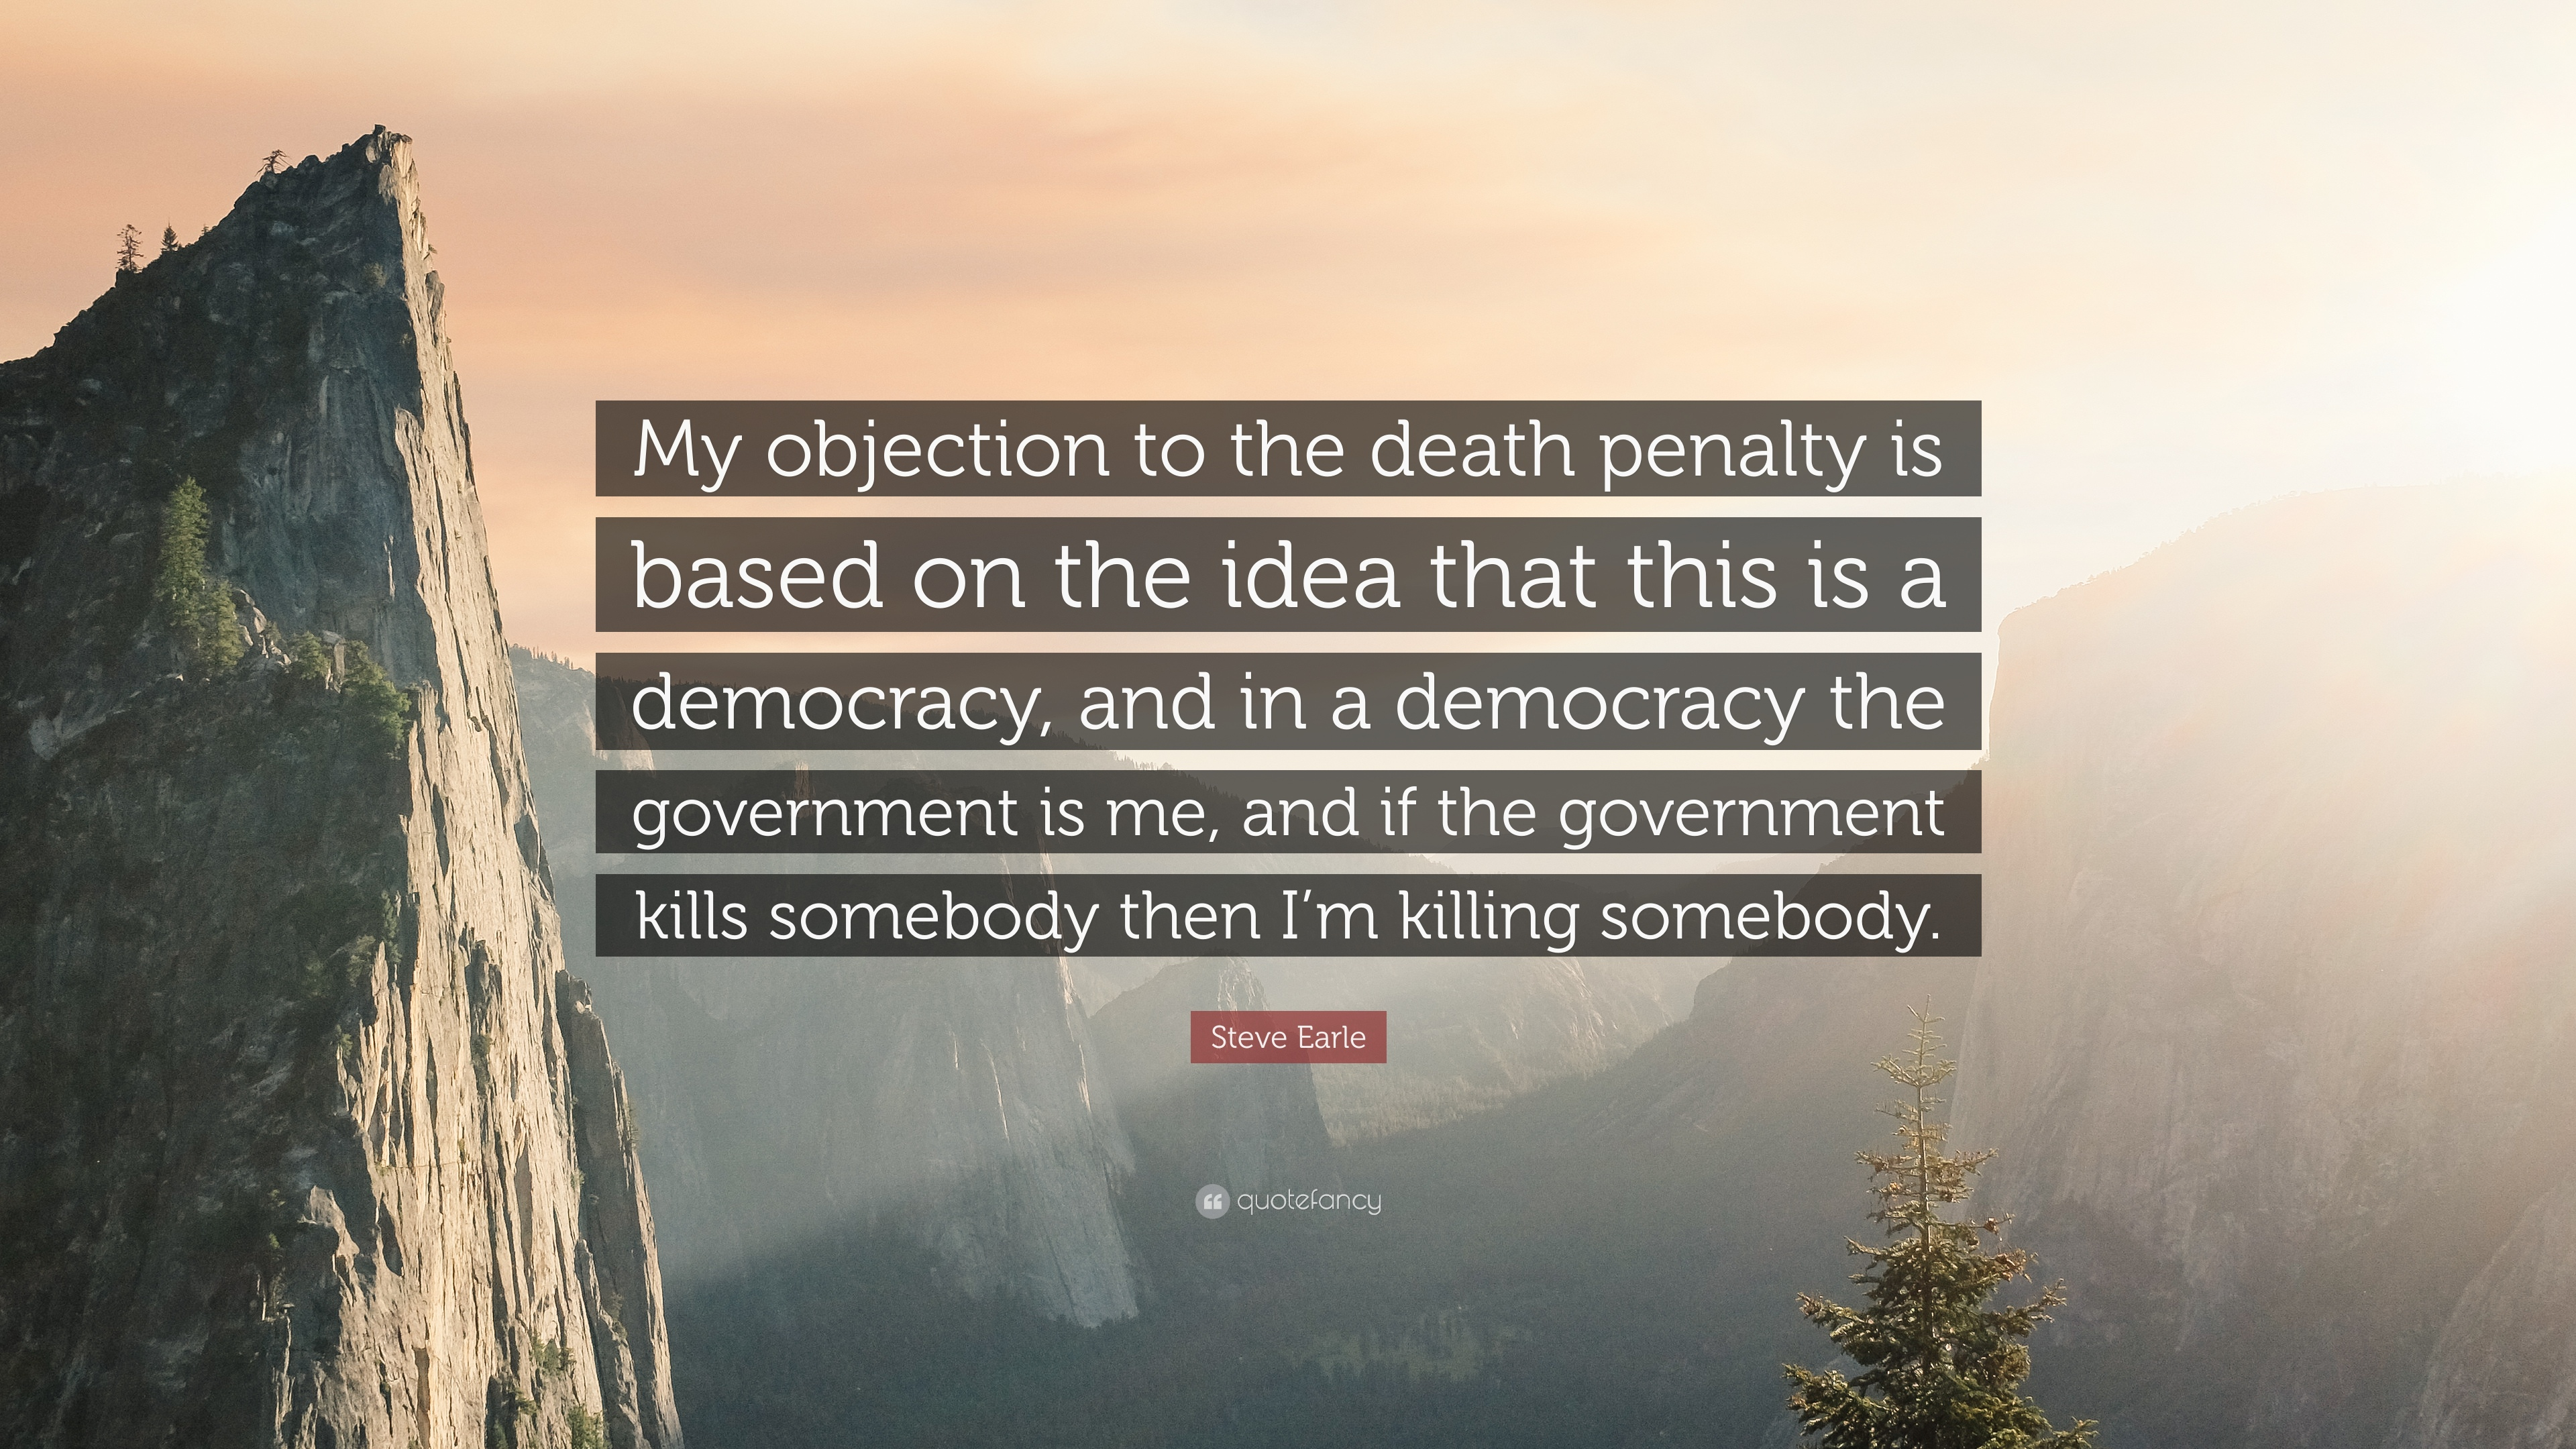 Death Penalty Quotes   Steve Earle Quote My Objection To The Death Penalty Is Based On